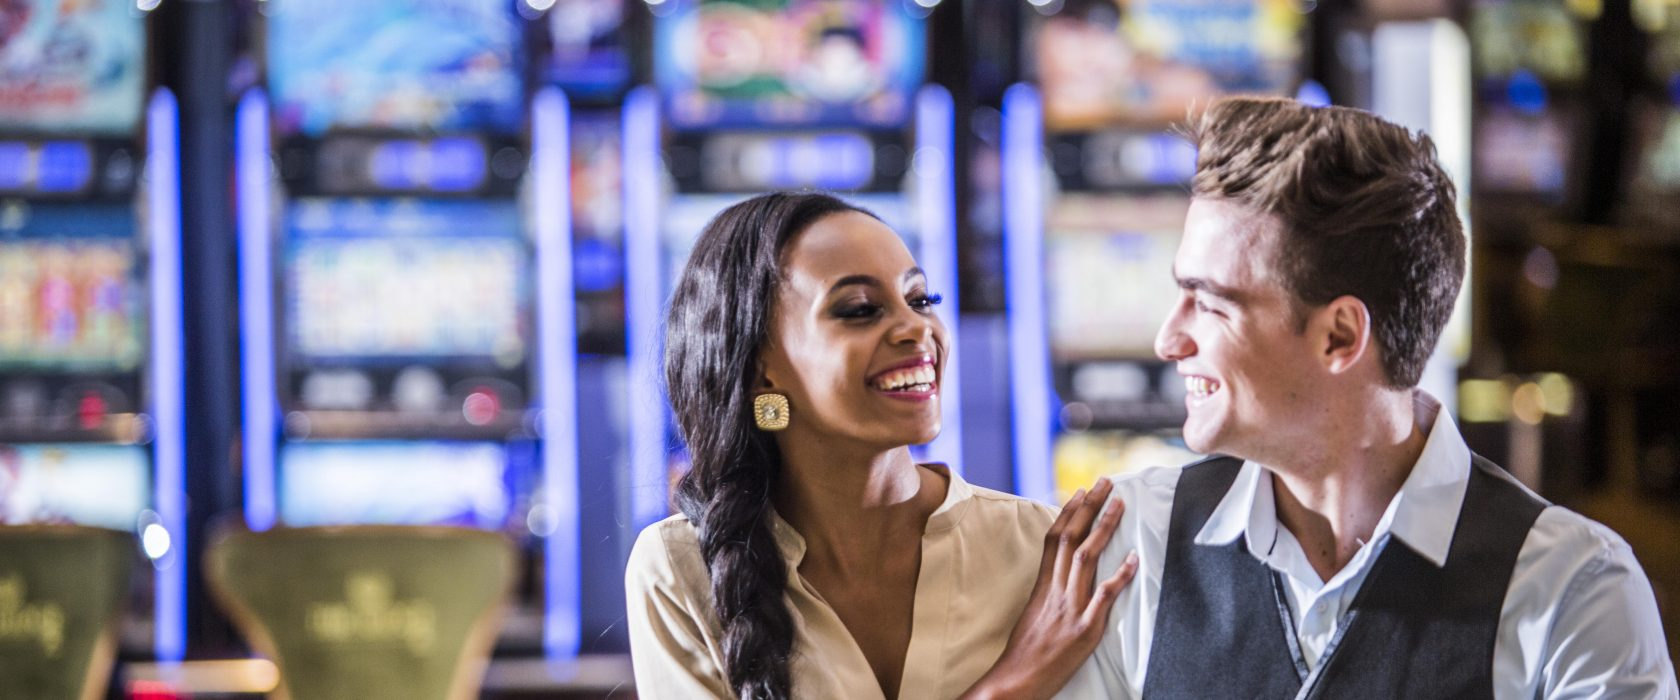 Couple By Slot Machines